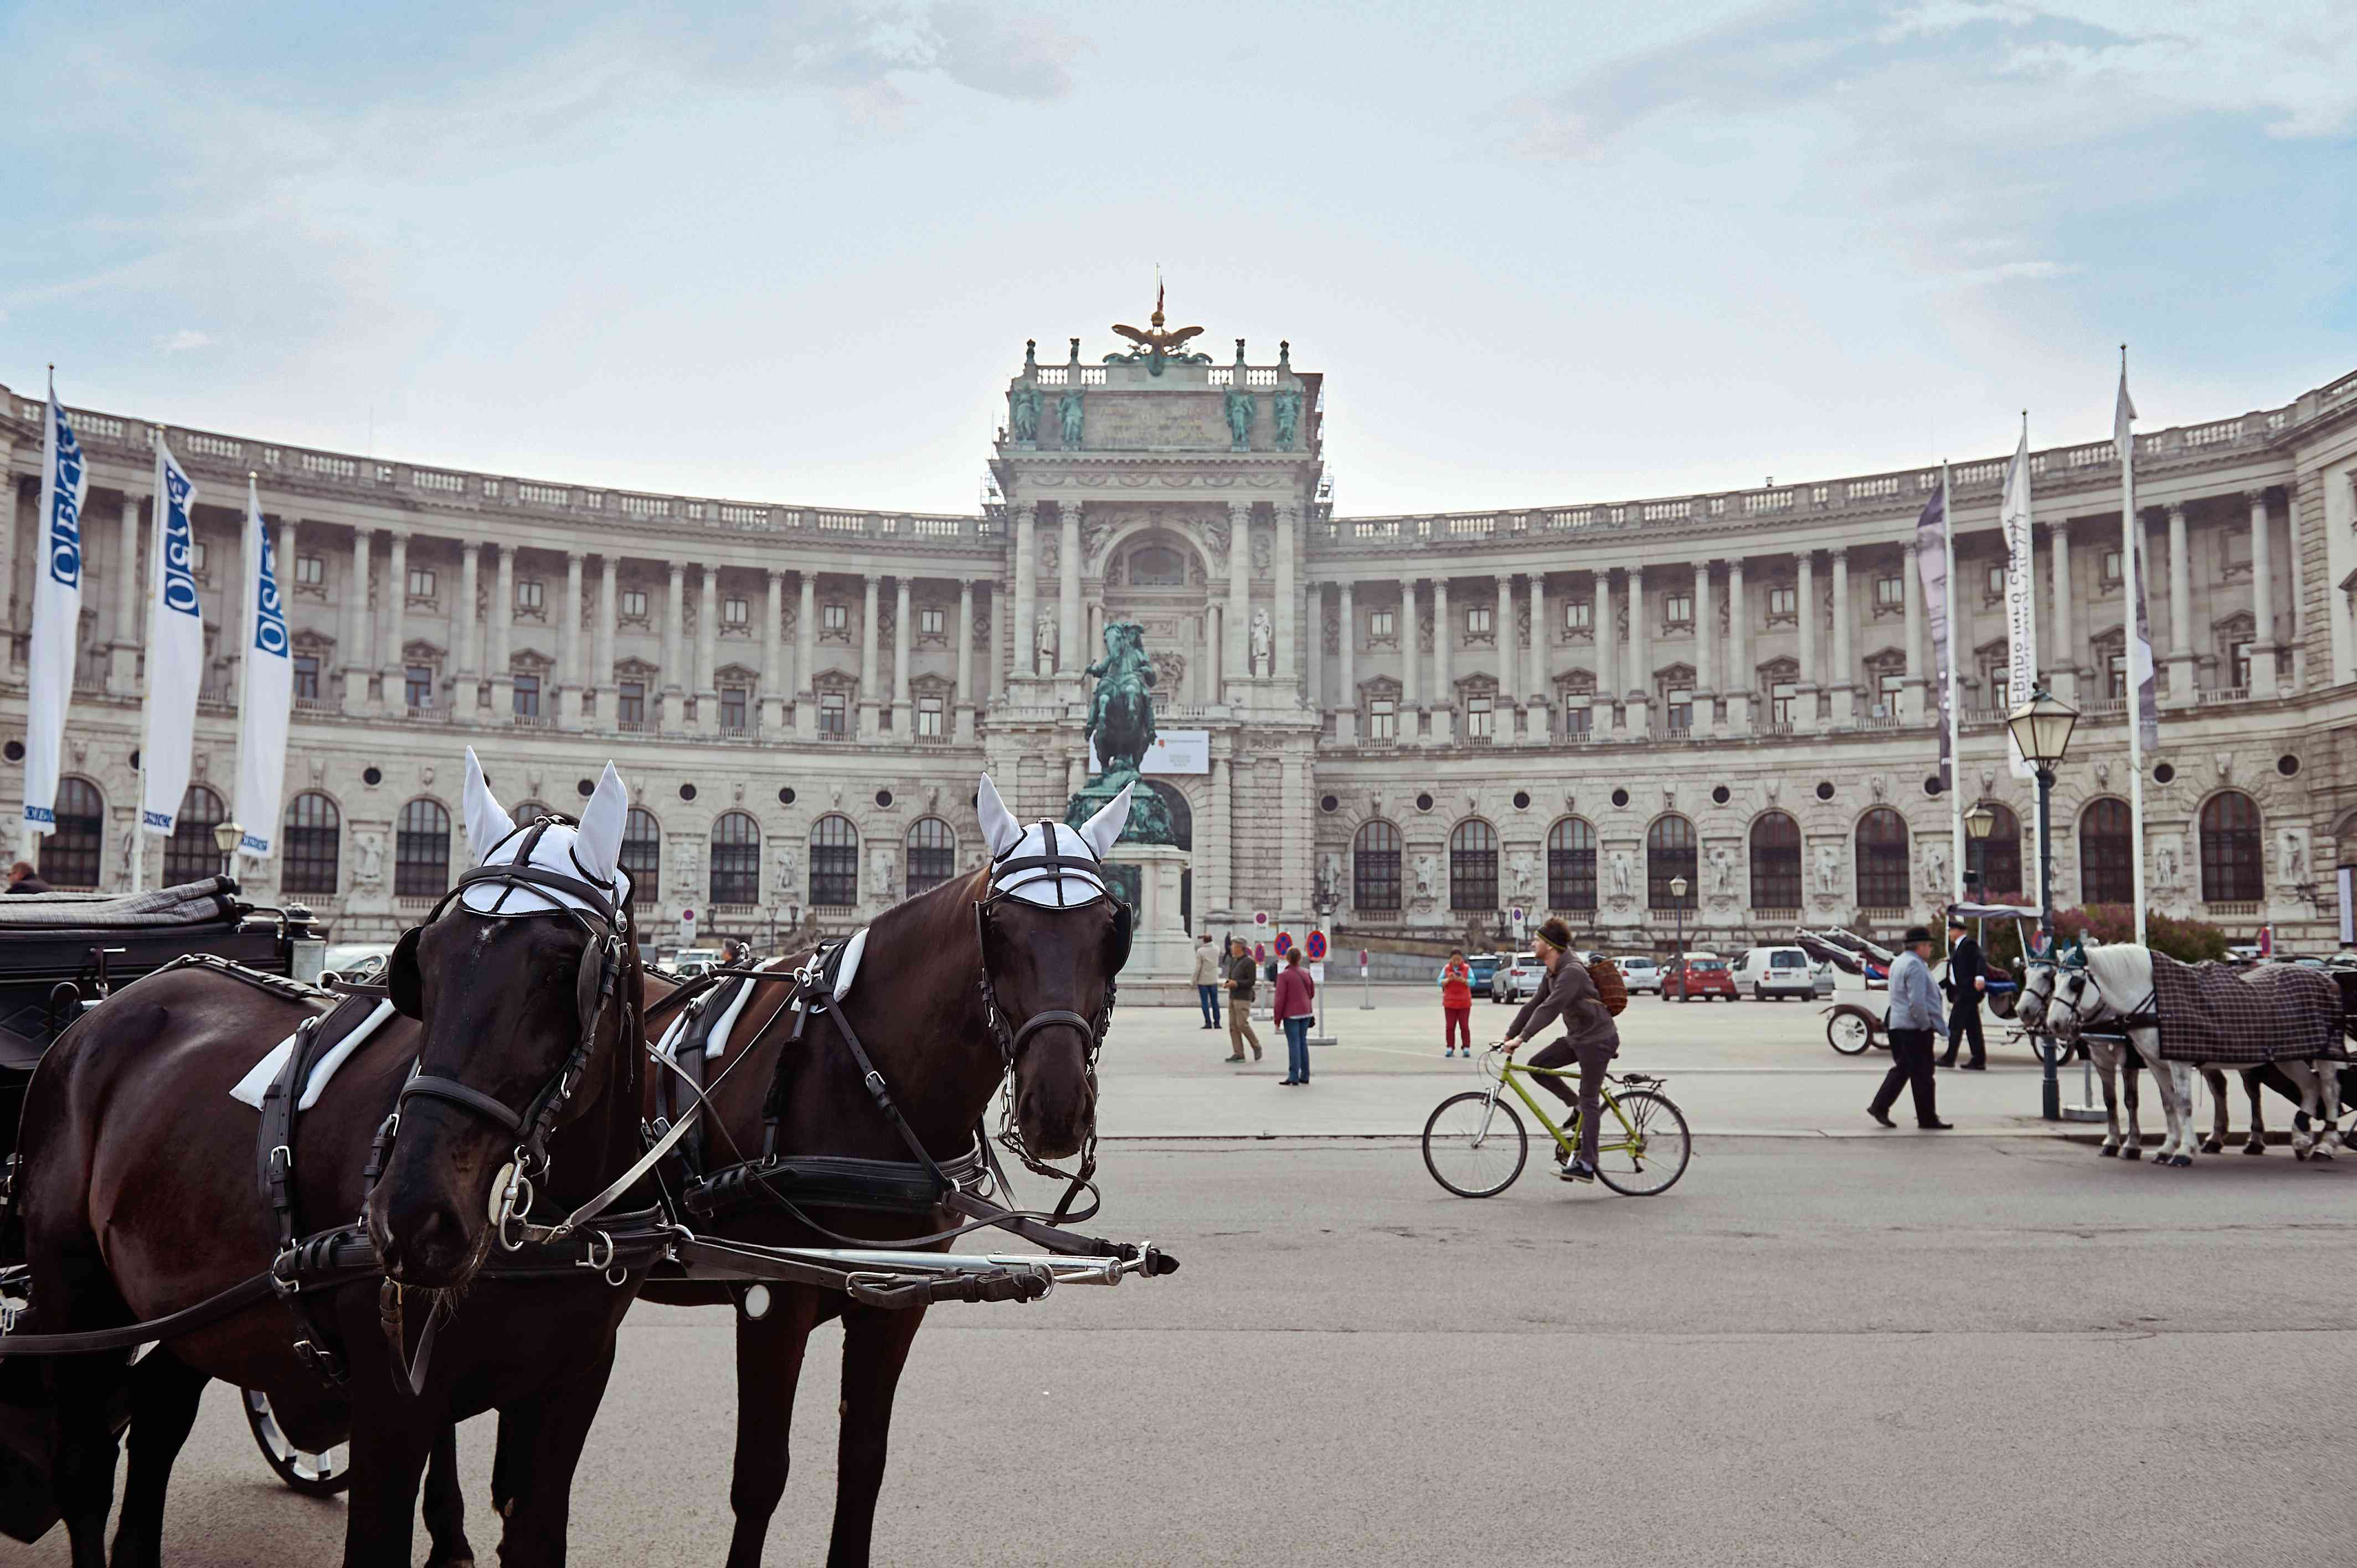 Two horses looking at the camera in front of Hofburg Palace